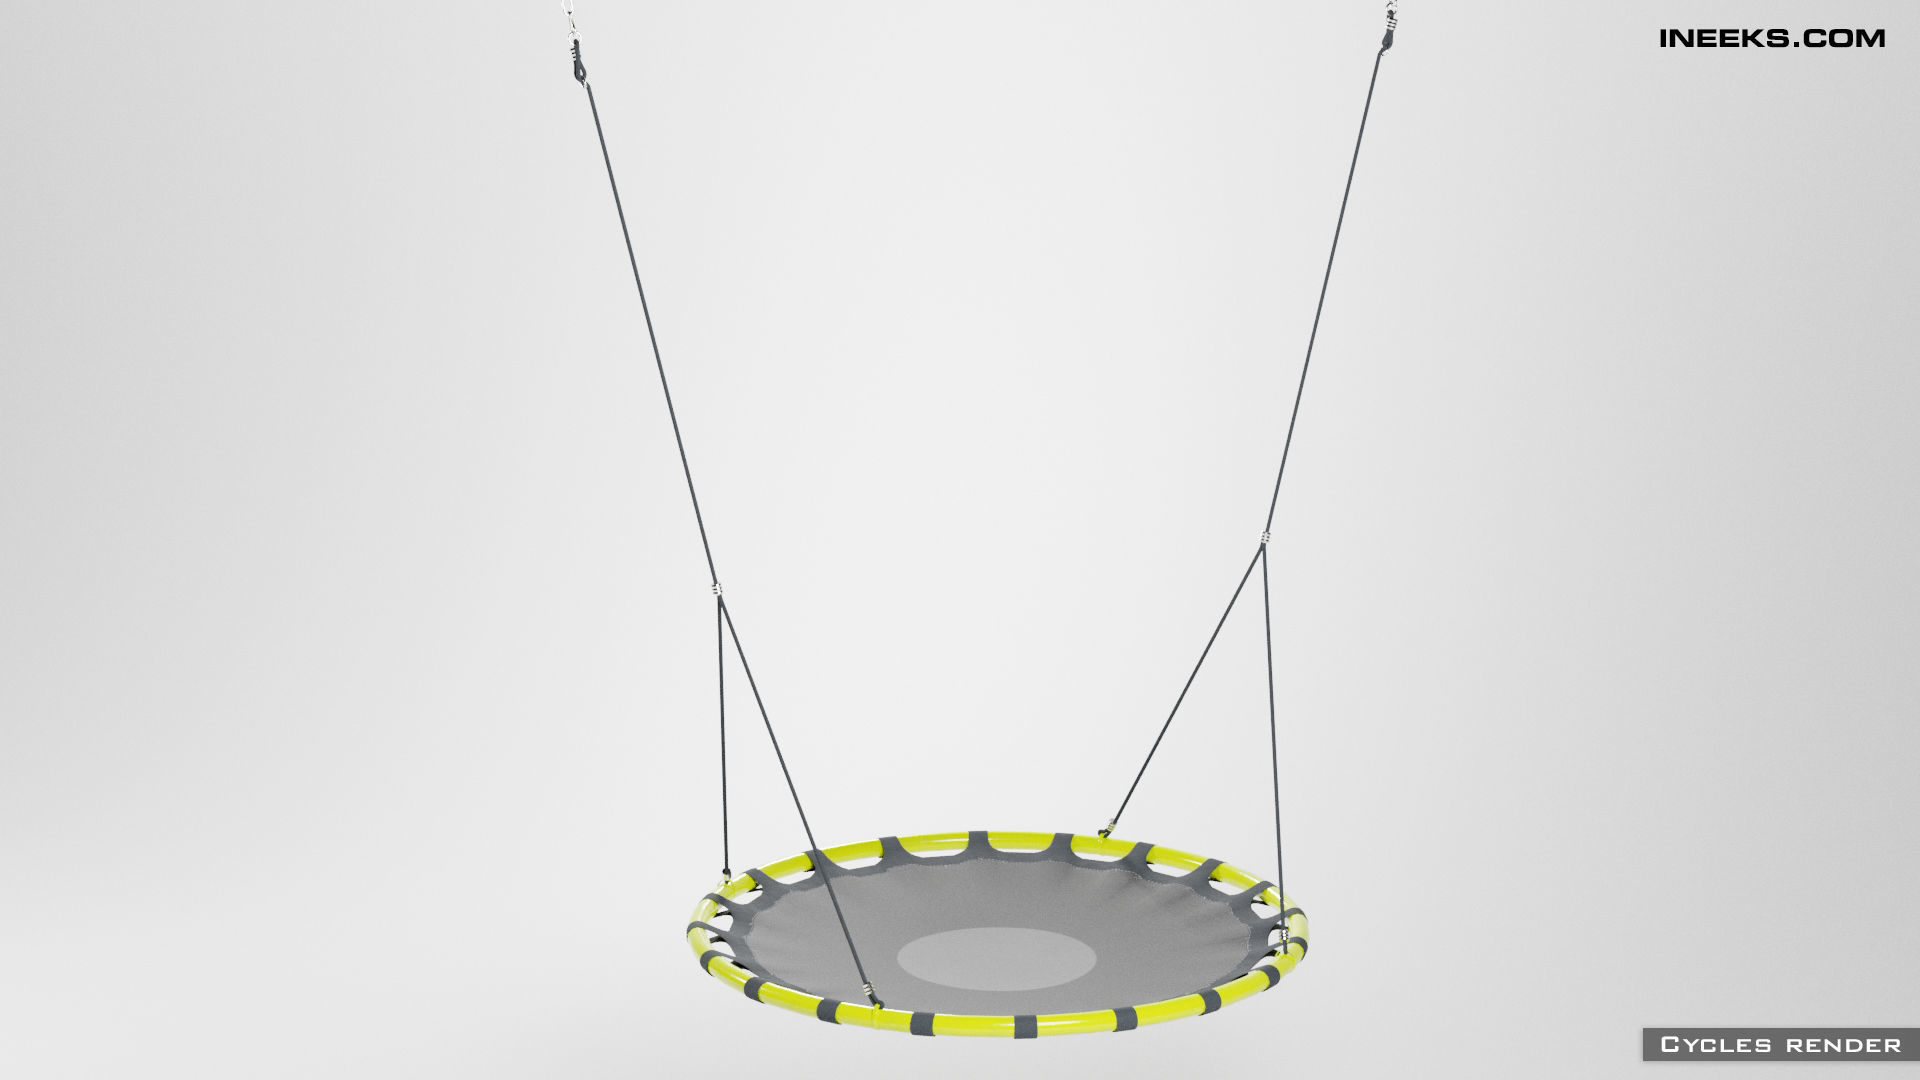 Swings nest seat with hanging ropes